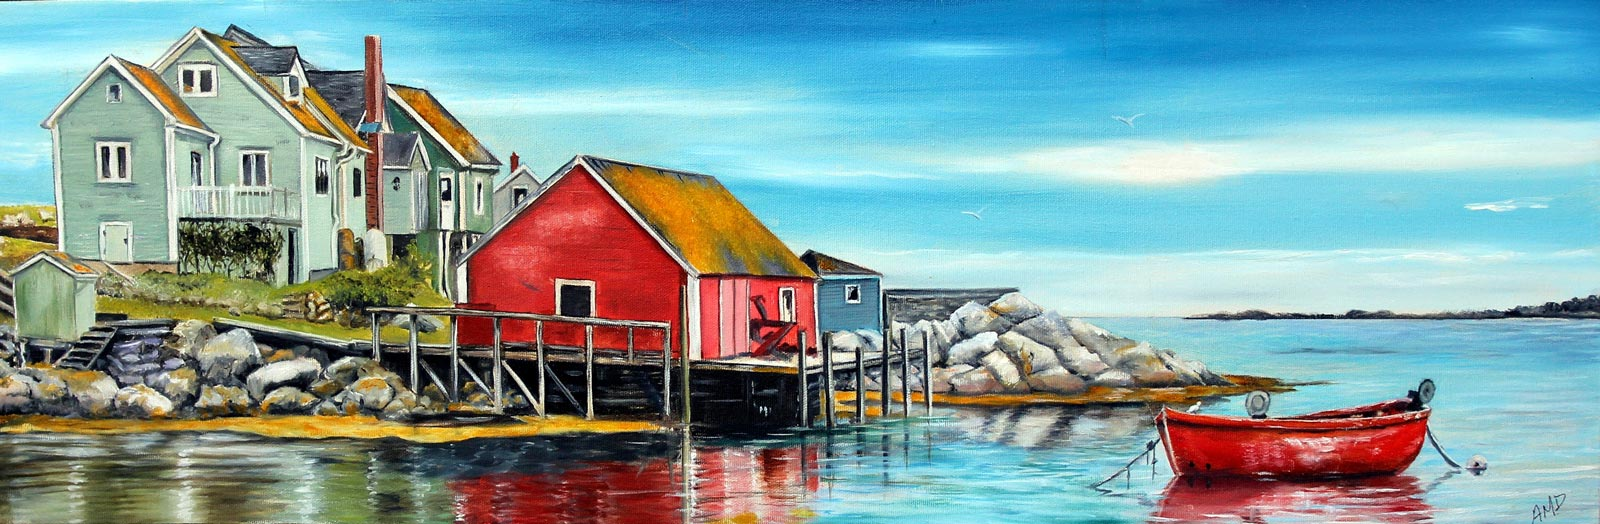 """Peggy's Cove"", Nova Scotia, 20x8"